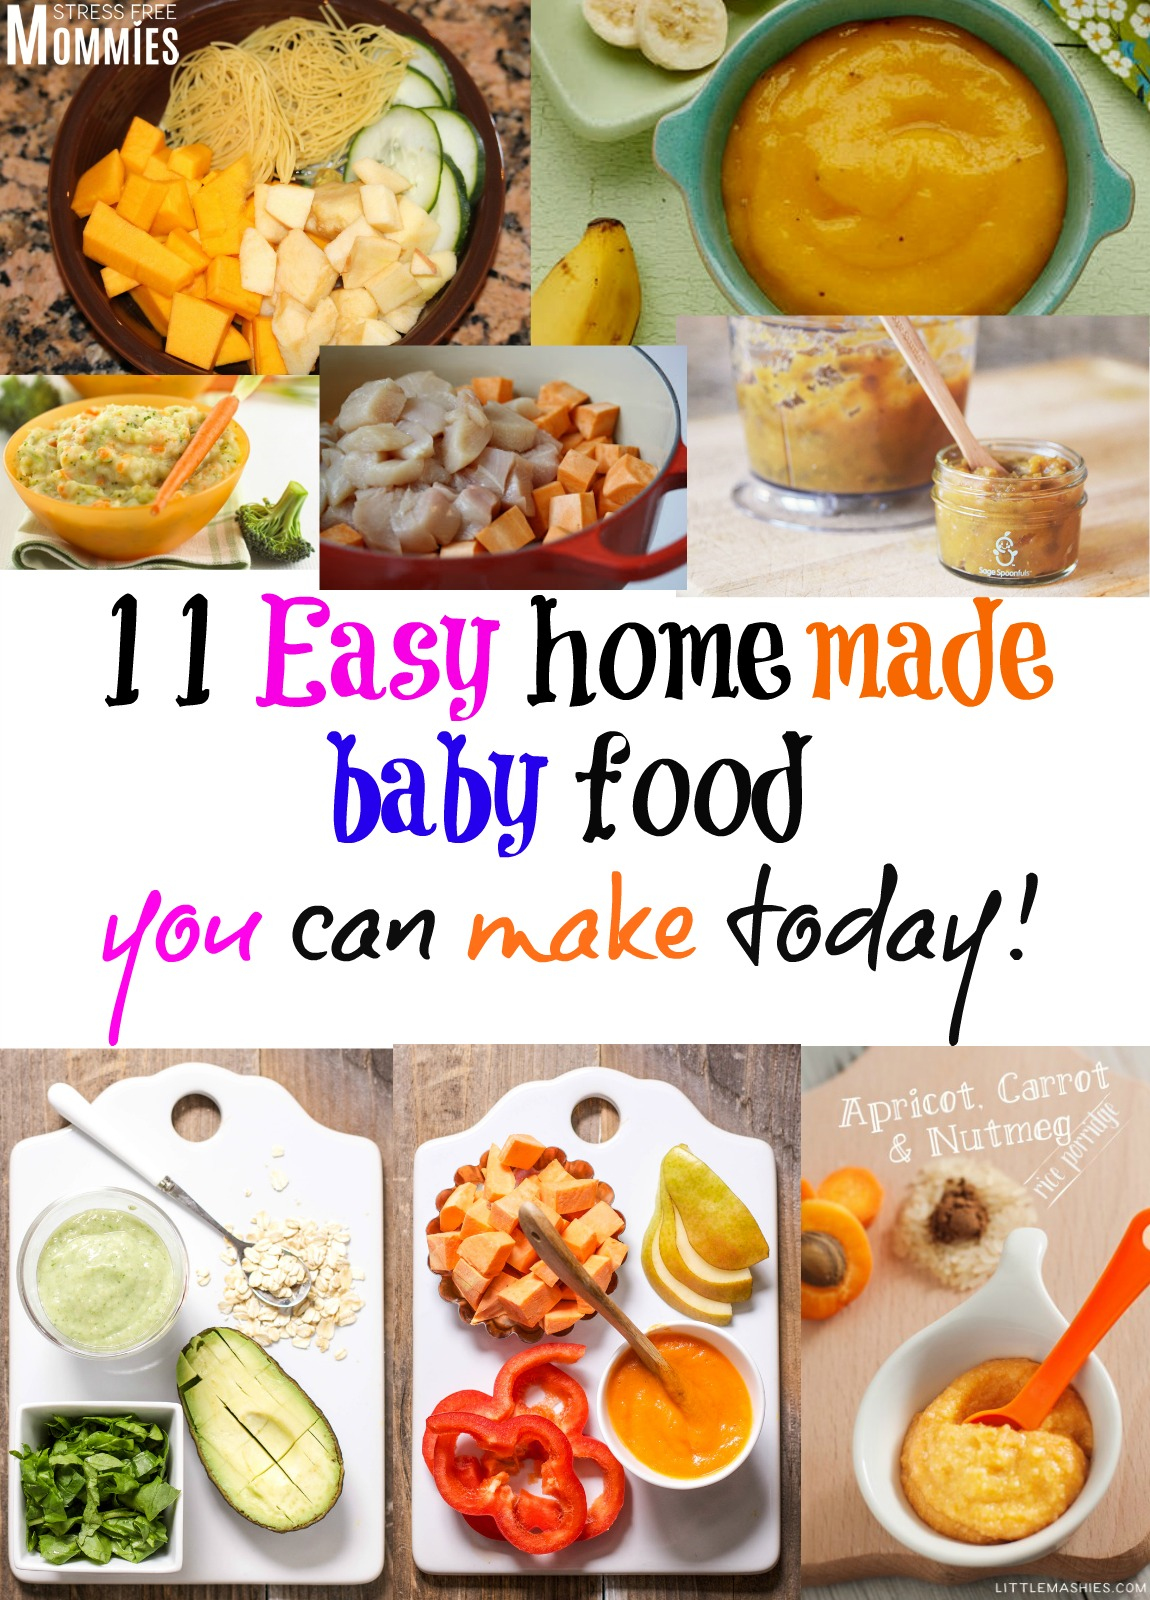 11 easy homemade baby food you can make today- 11 of the yummiest and easiest baby food for your baby to enjoy. Stages 1 , 2 and 3! #babyfood #baby #momtips